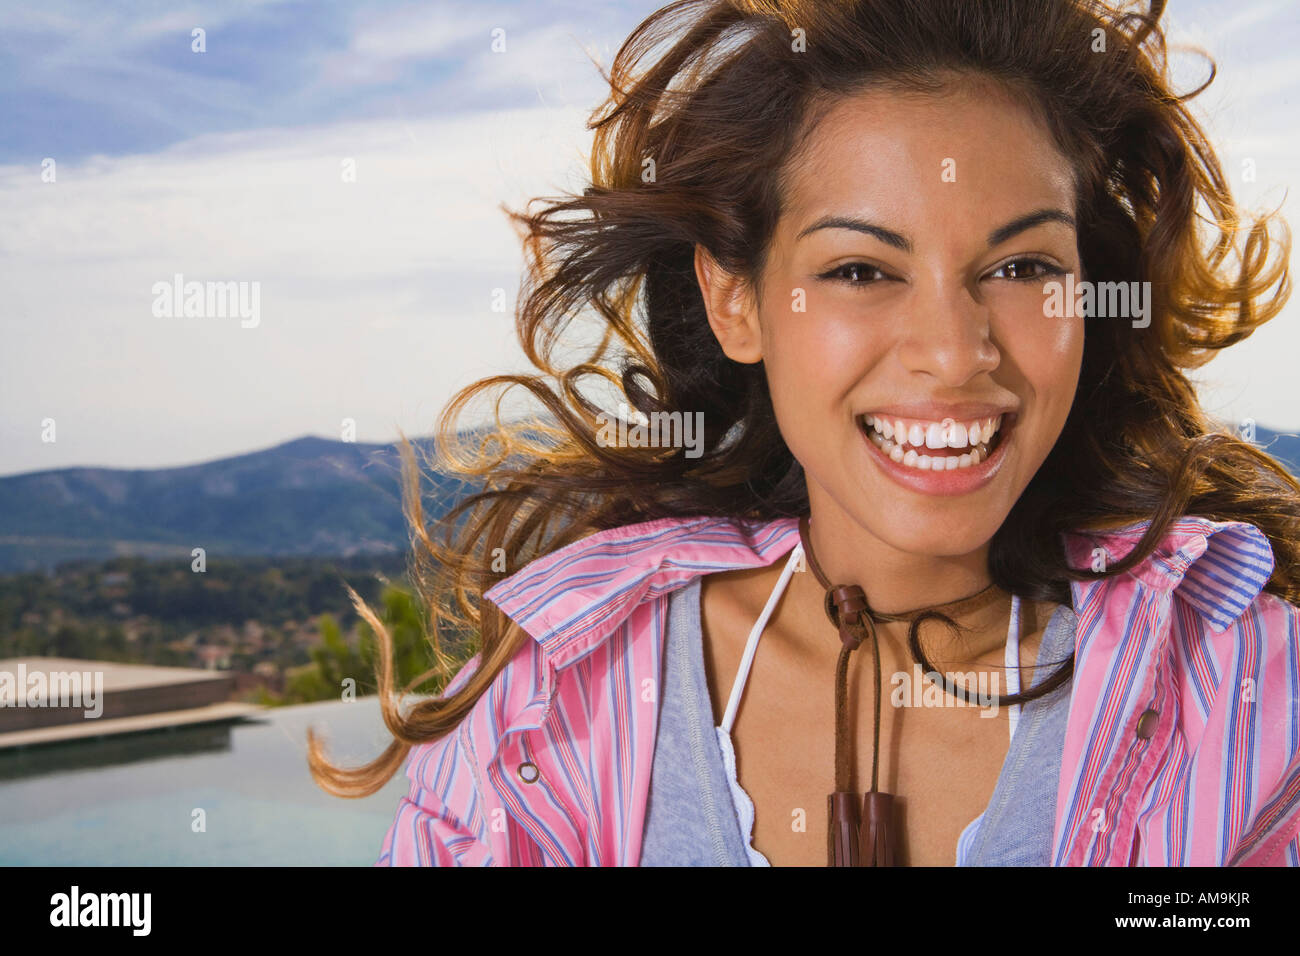 Natural beauty woman laughs outside in nature. - Stock Image